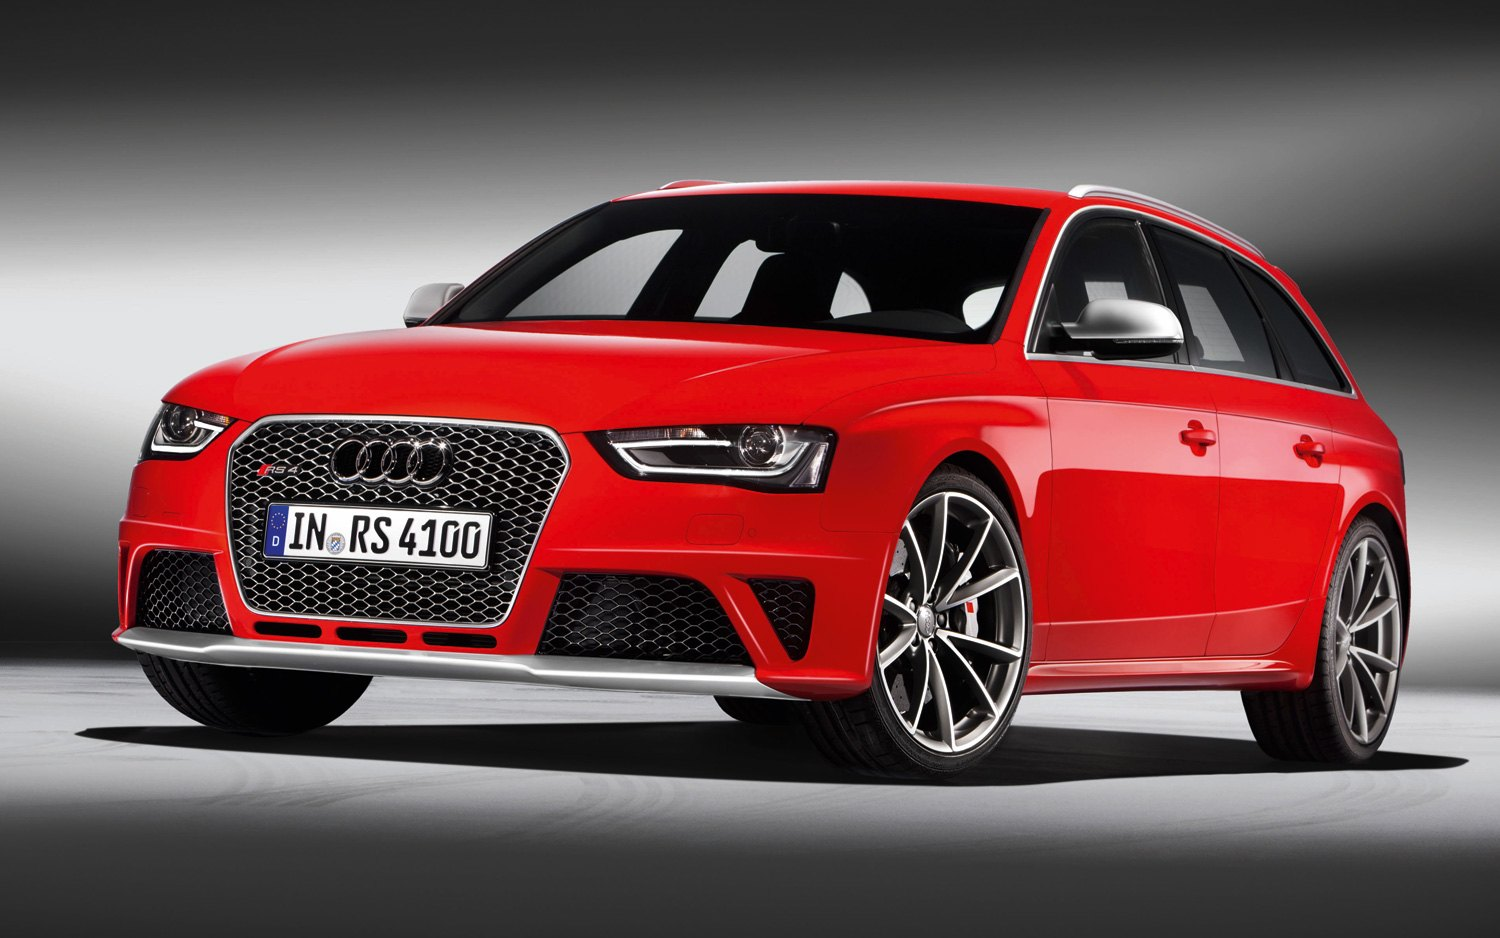 audi-rs4-20152013-audi-rs4-avant-profile-1-photo-1-mdim324n